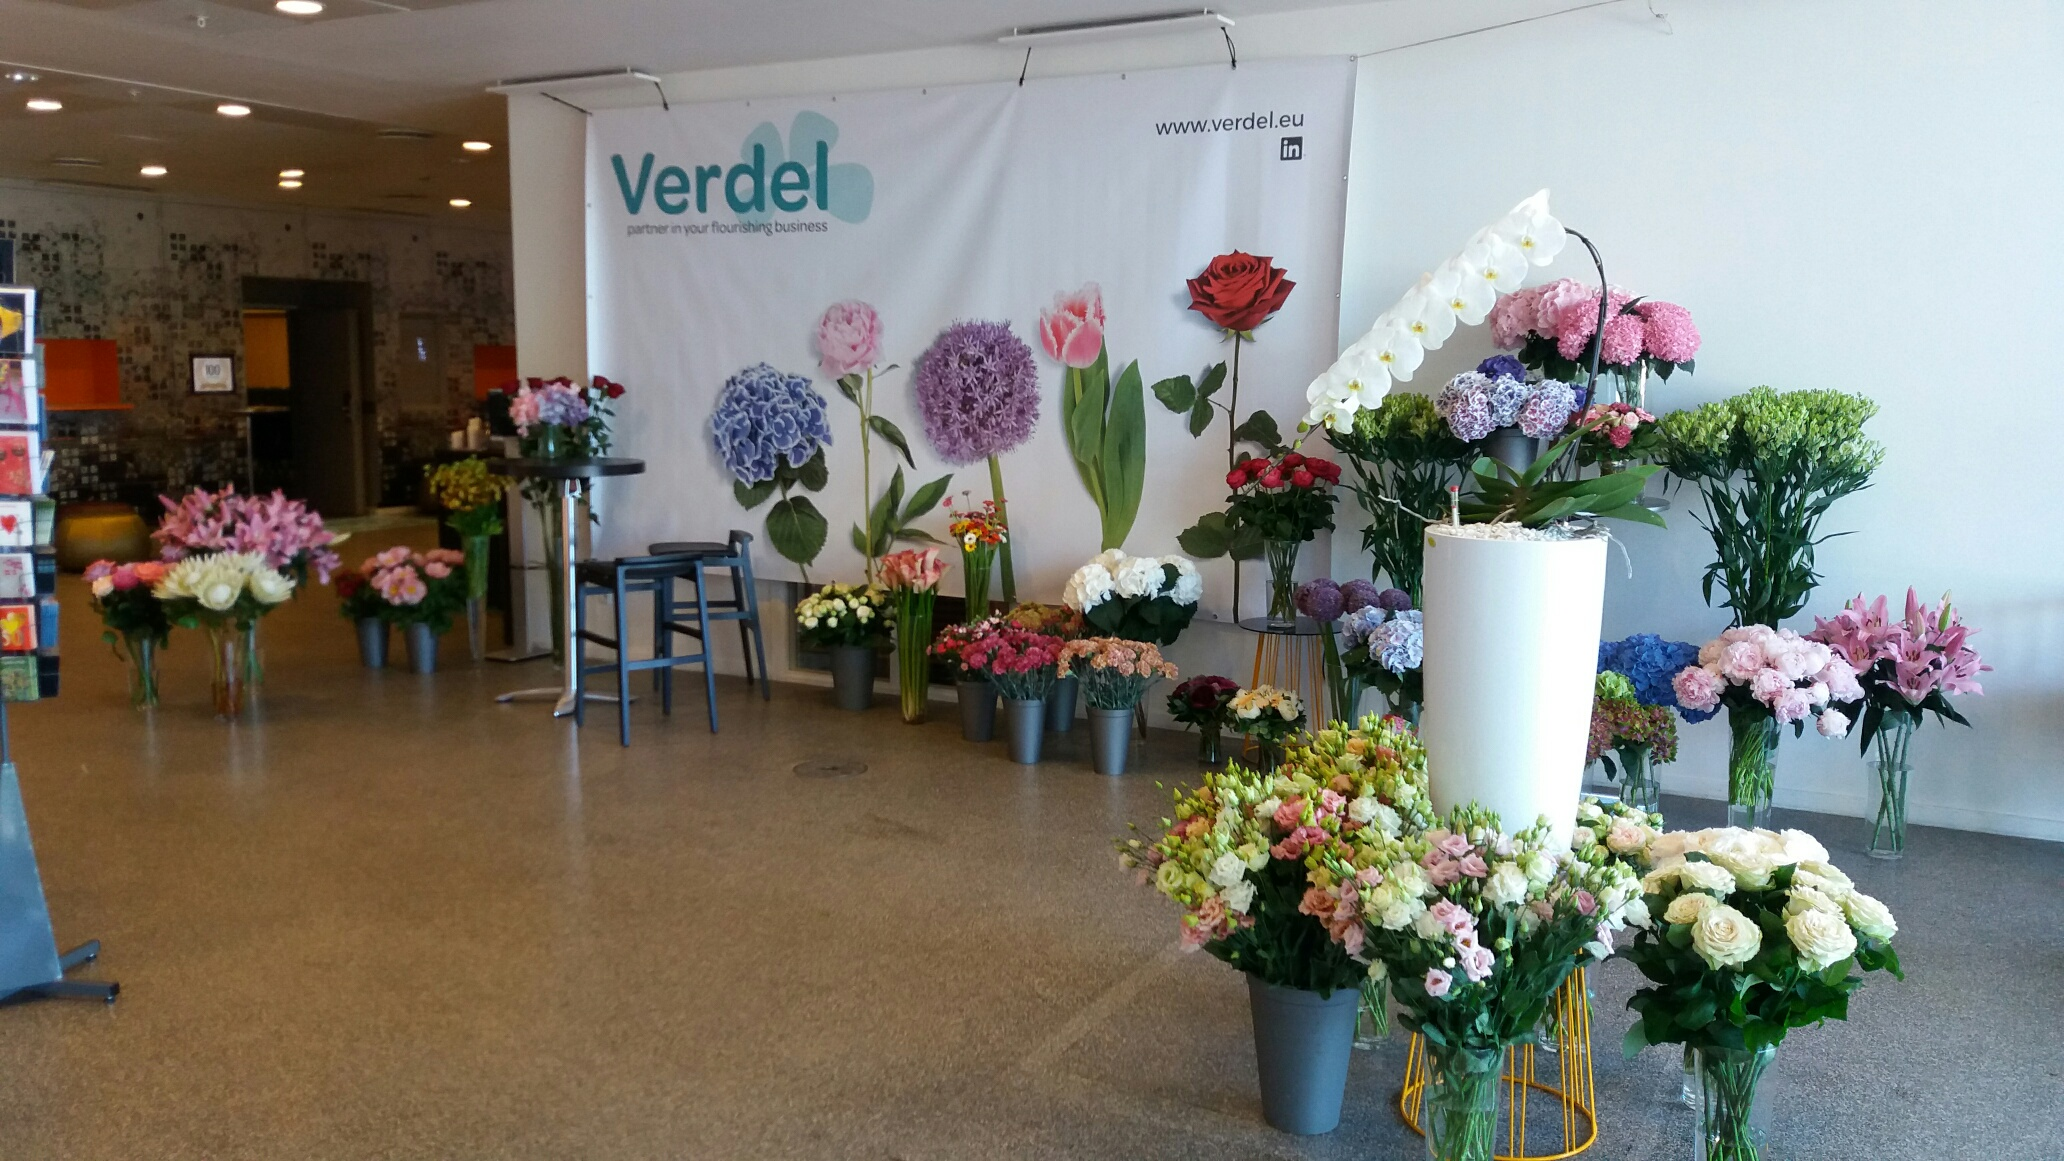 Verdel and BLOMSTER